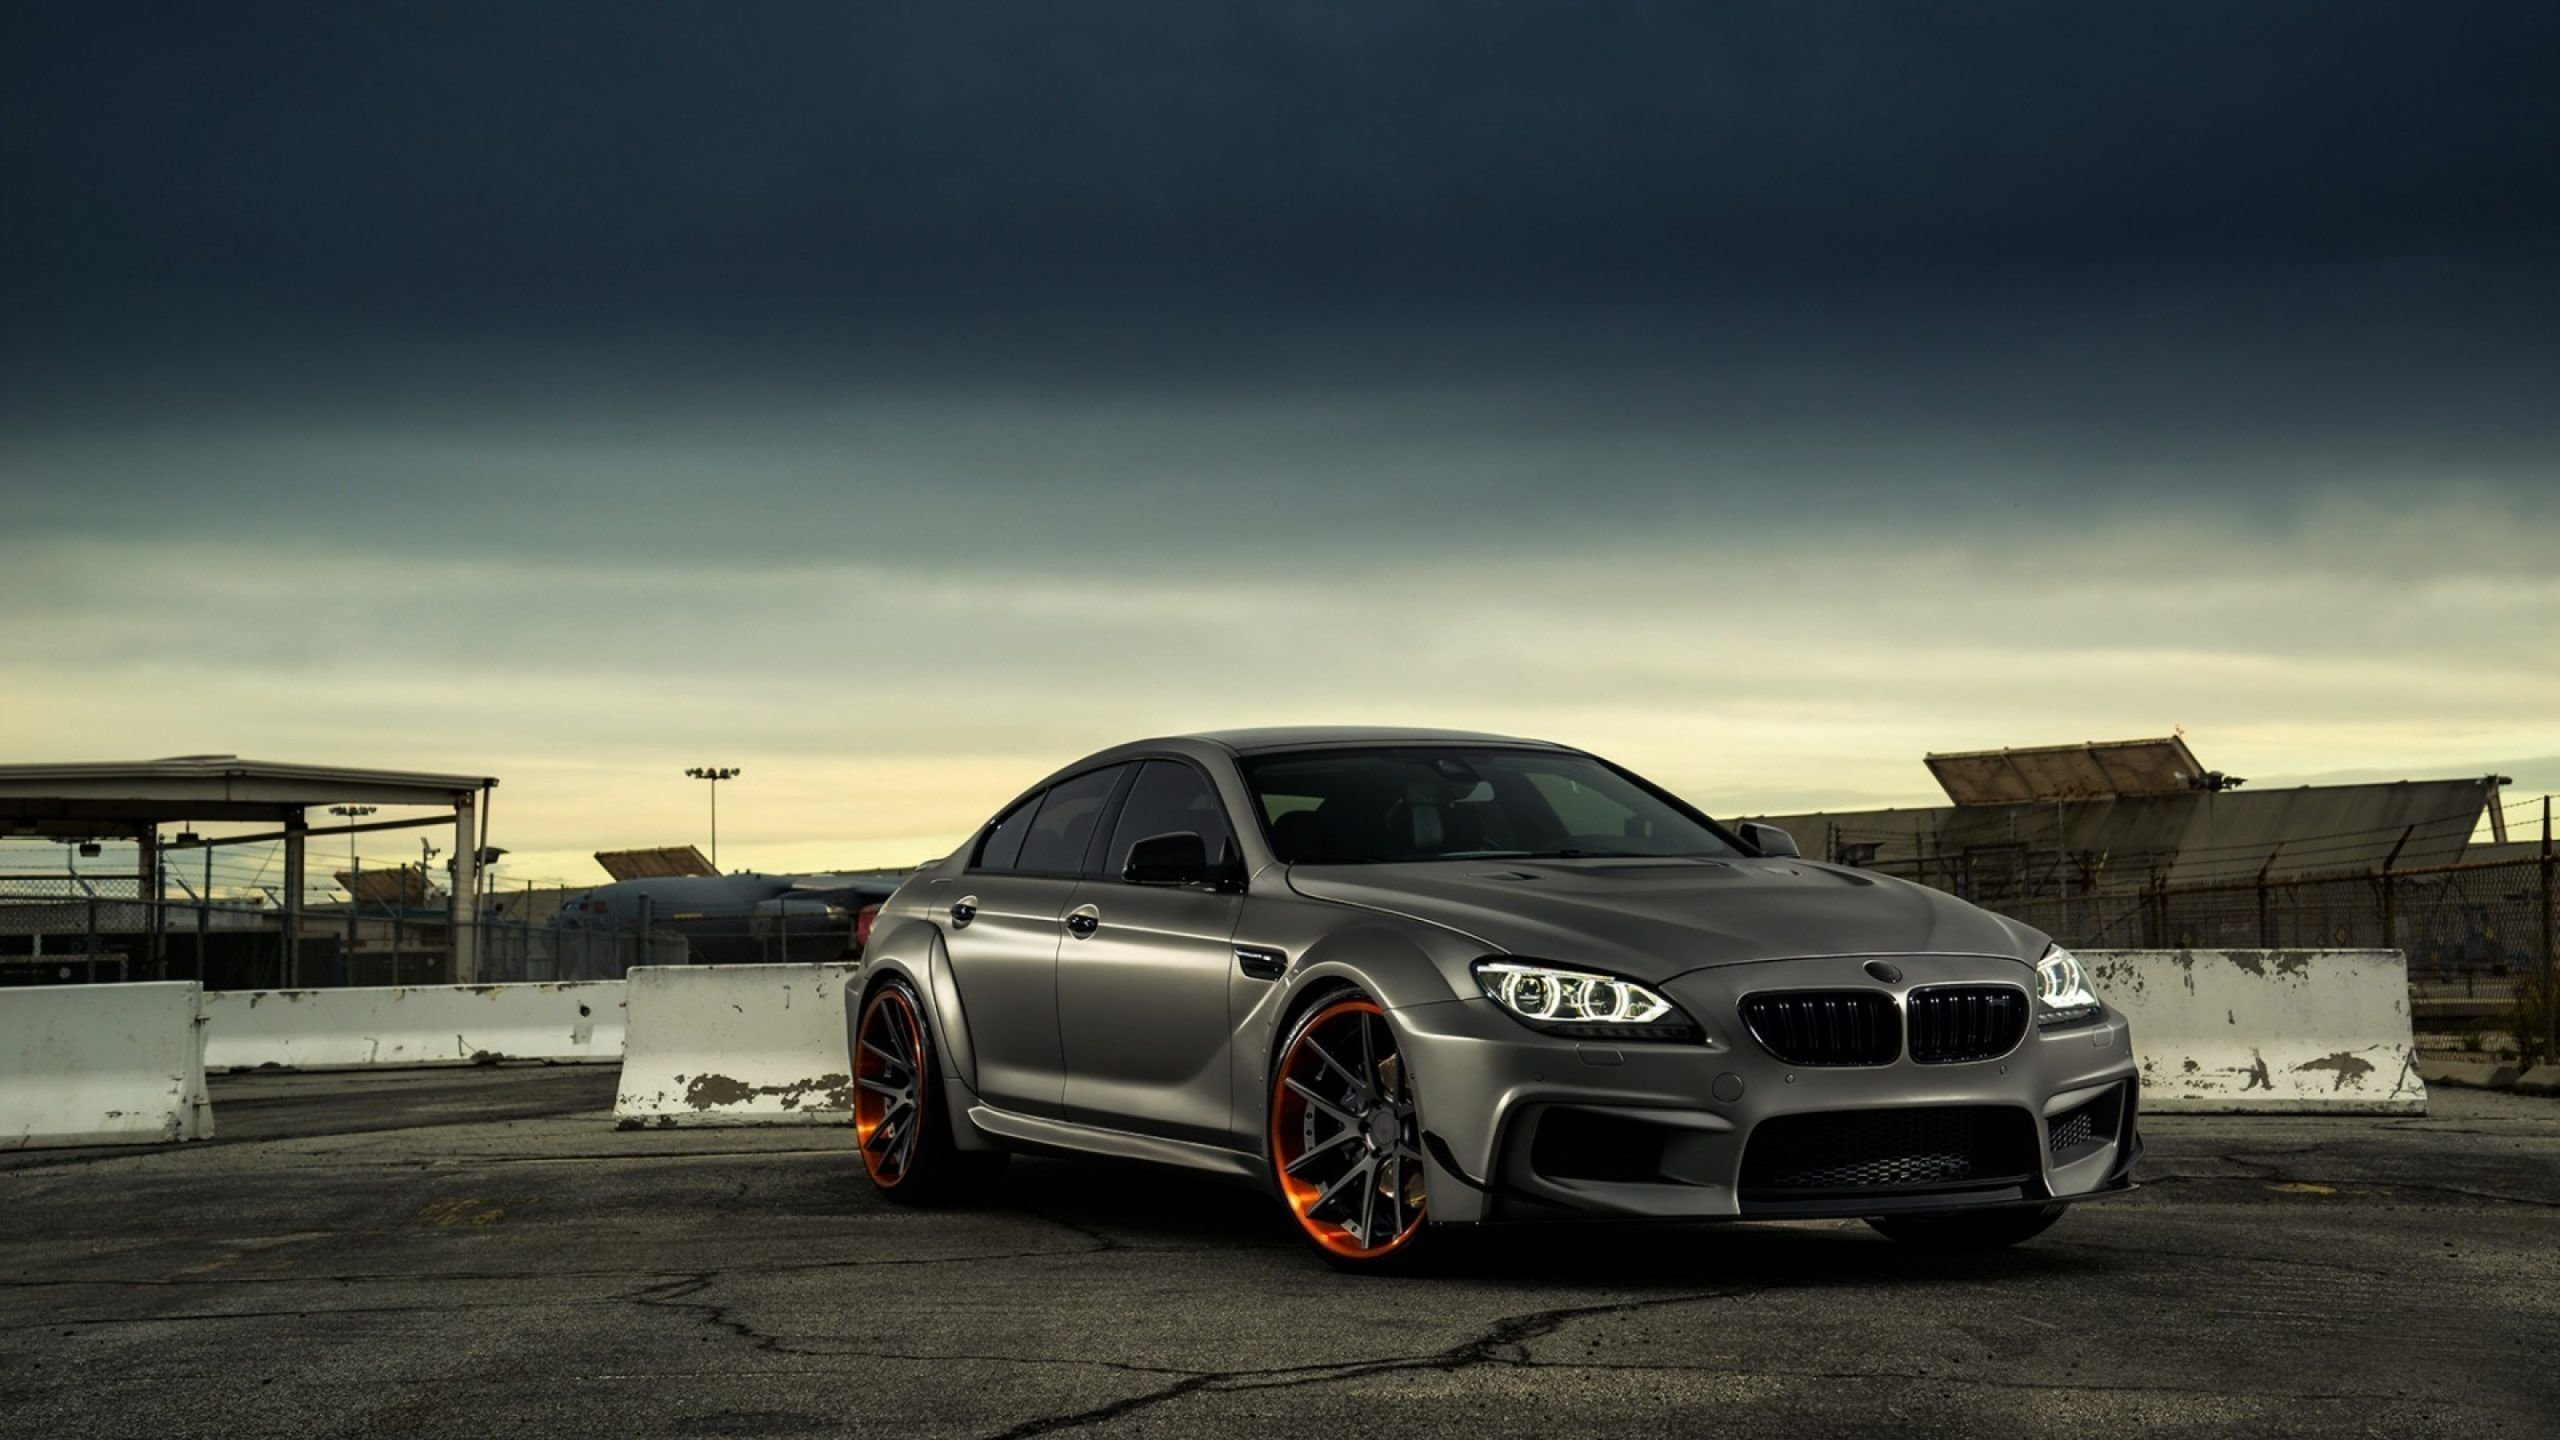 New 4K Bmw Wallpapers Top Free 4K Bmw Backgrounds On This Month